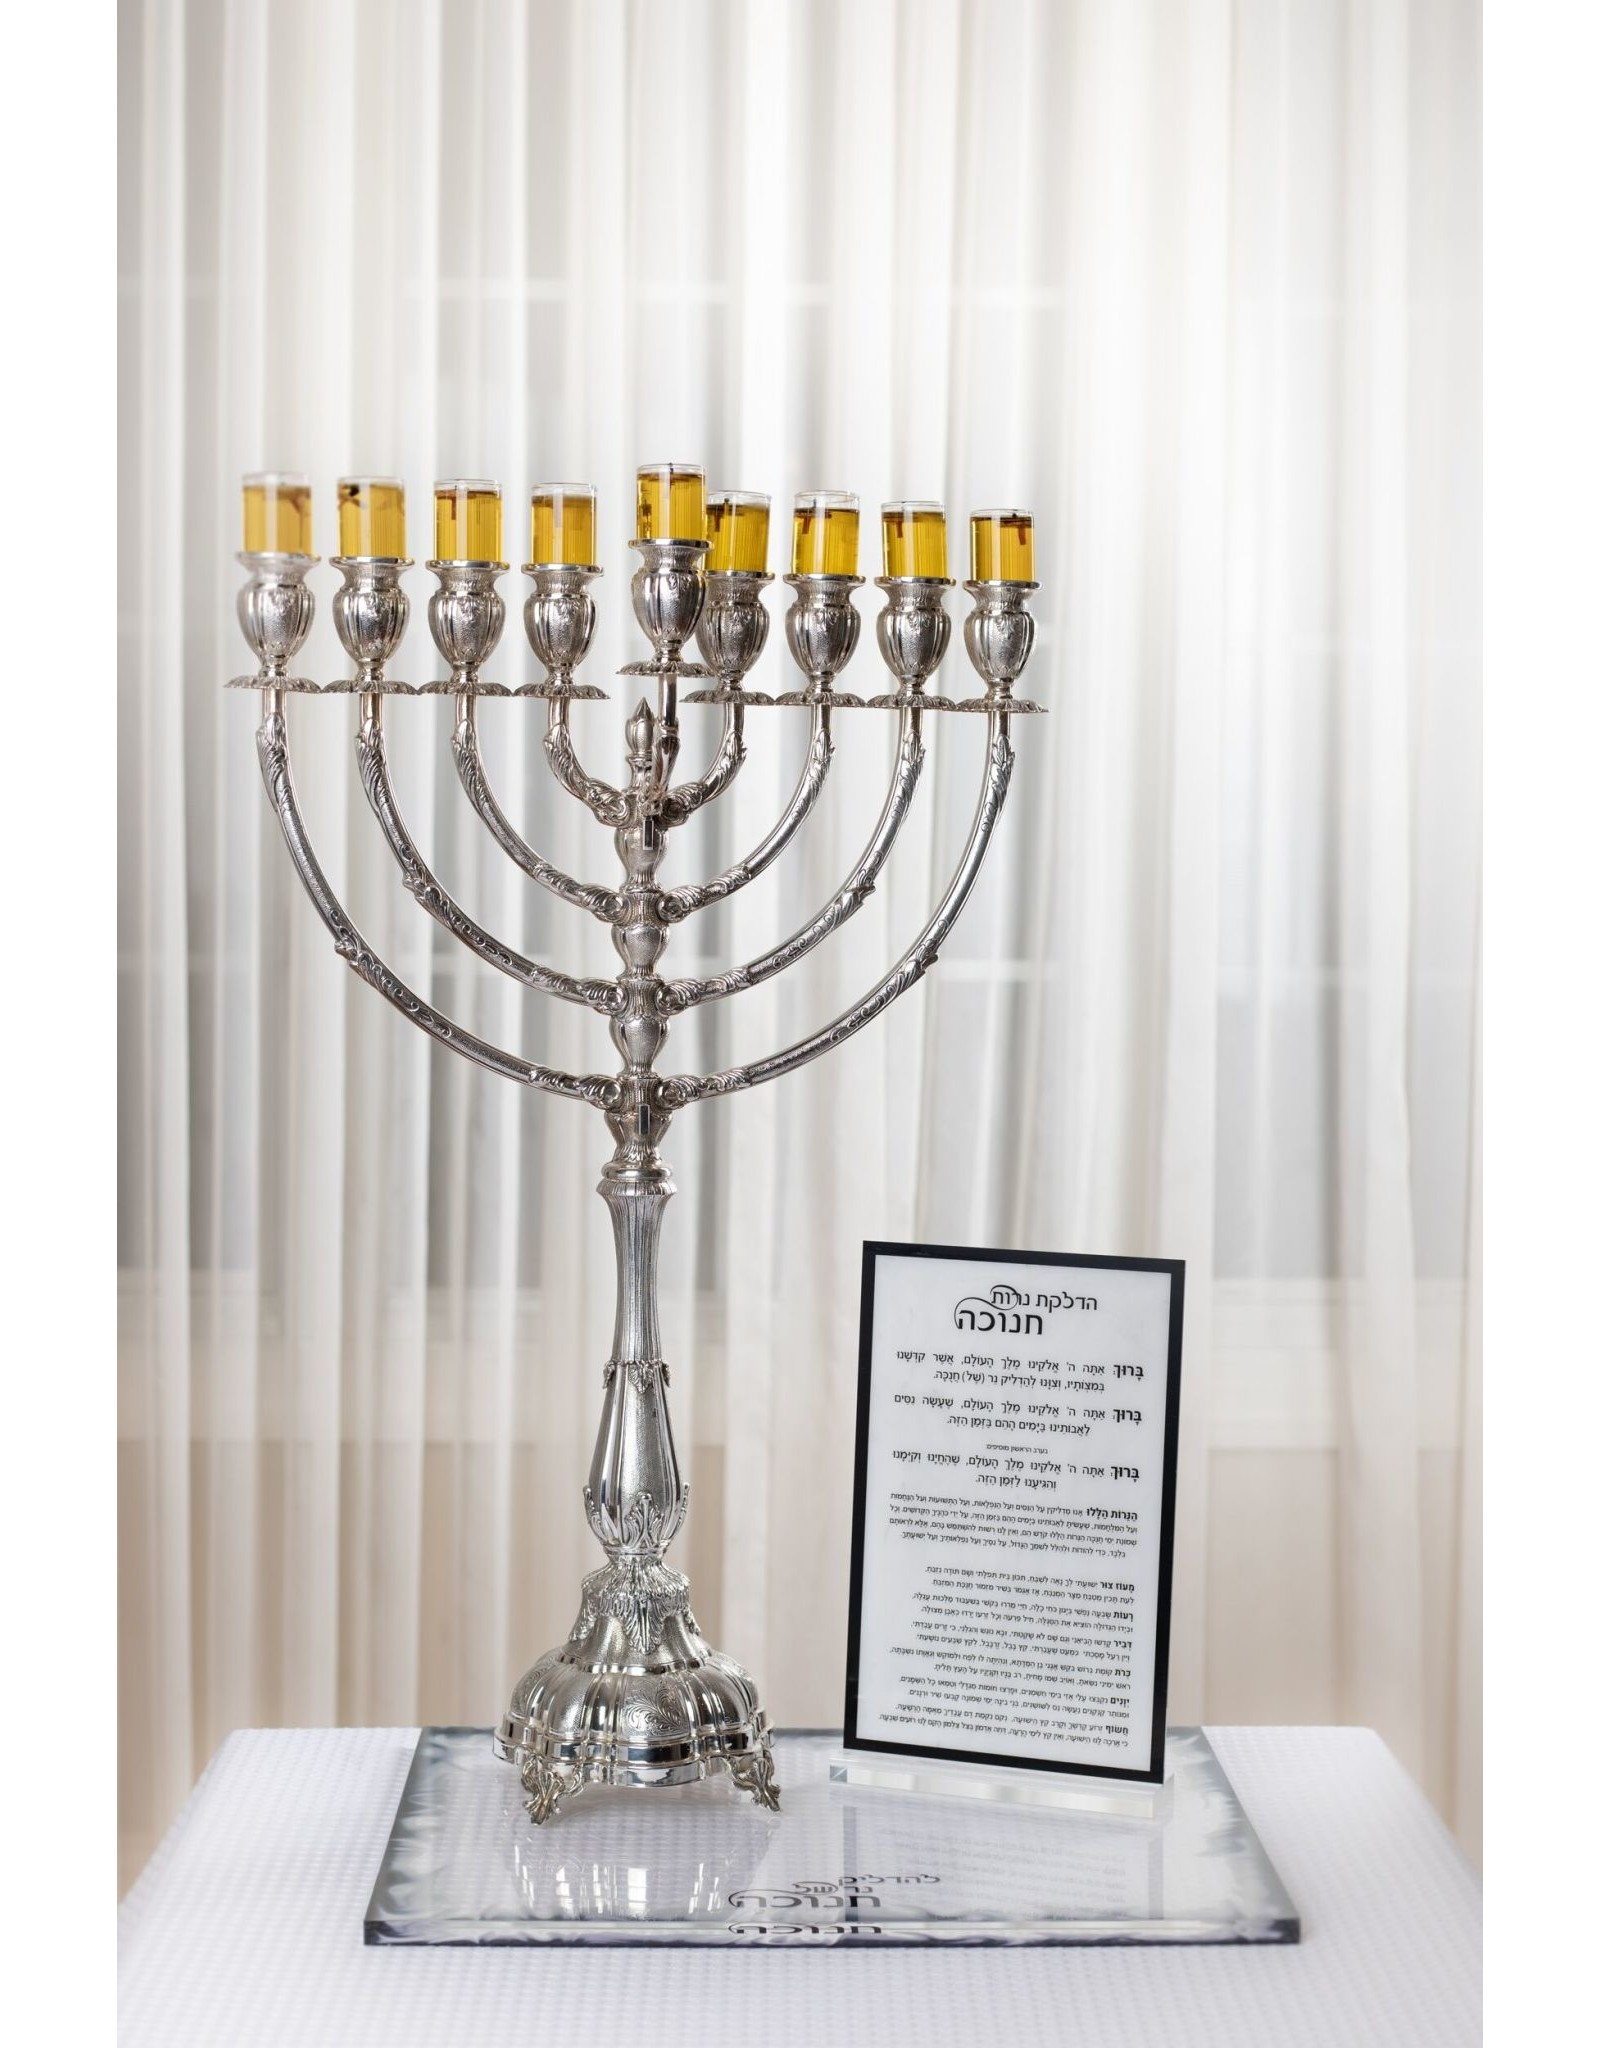 Presented Touch Chanukah Blessings Plaque Traditional Design White Marble Black